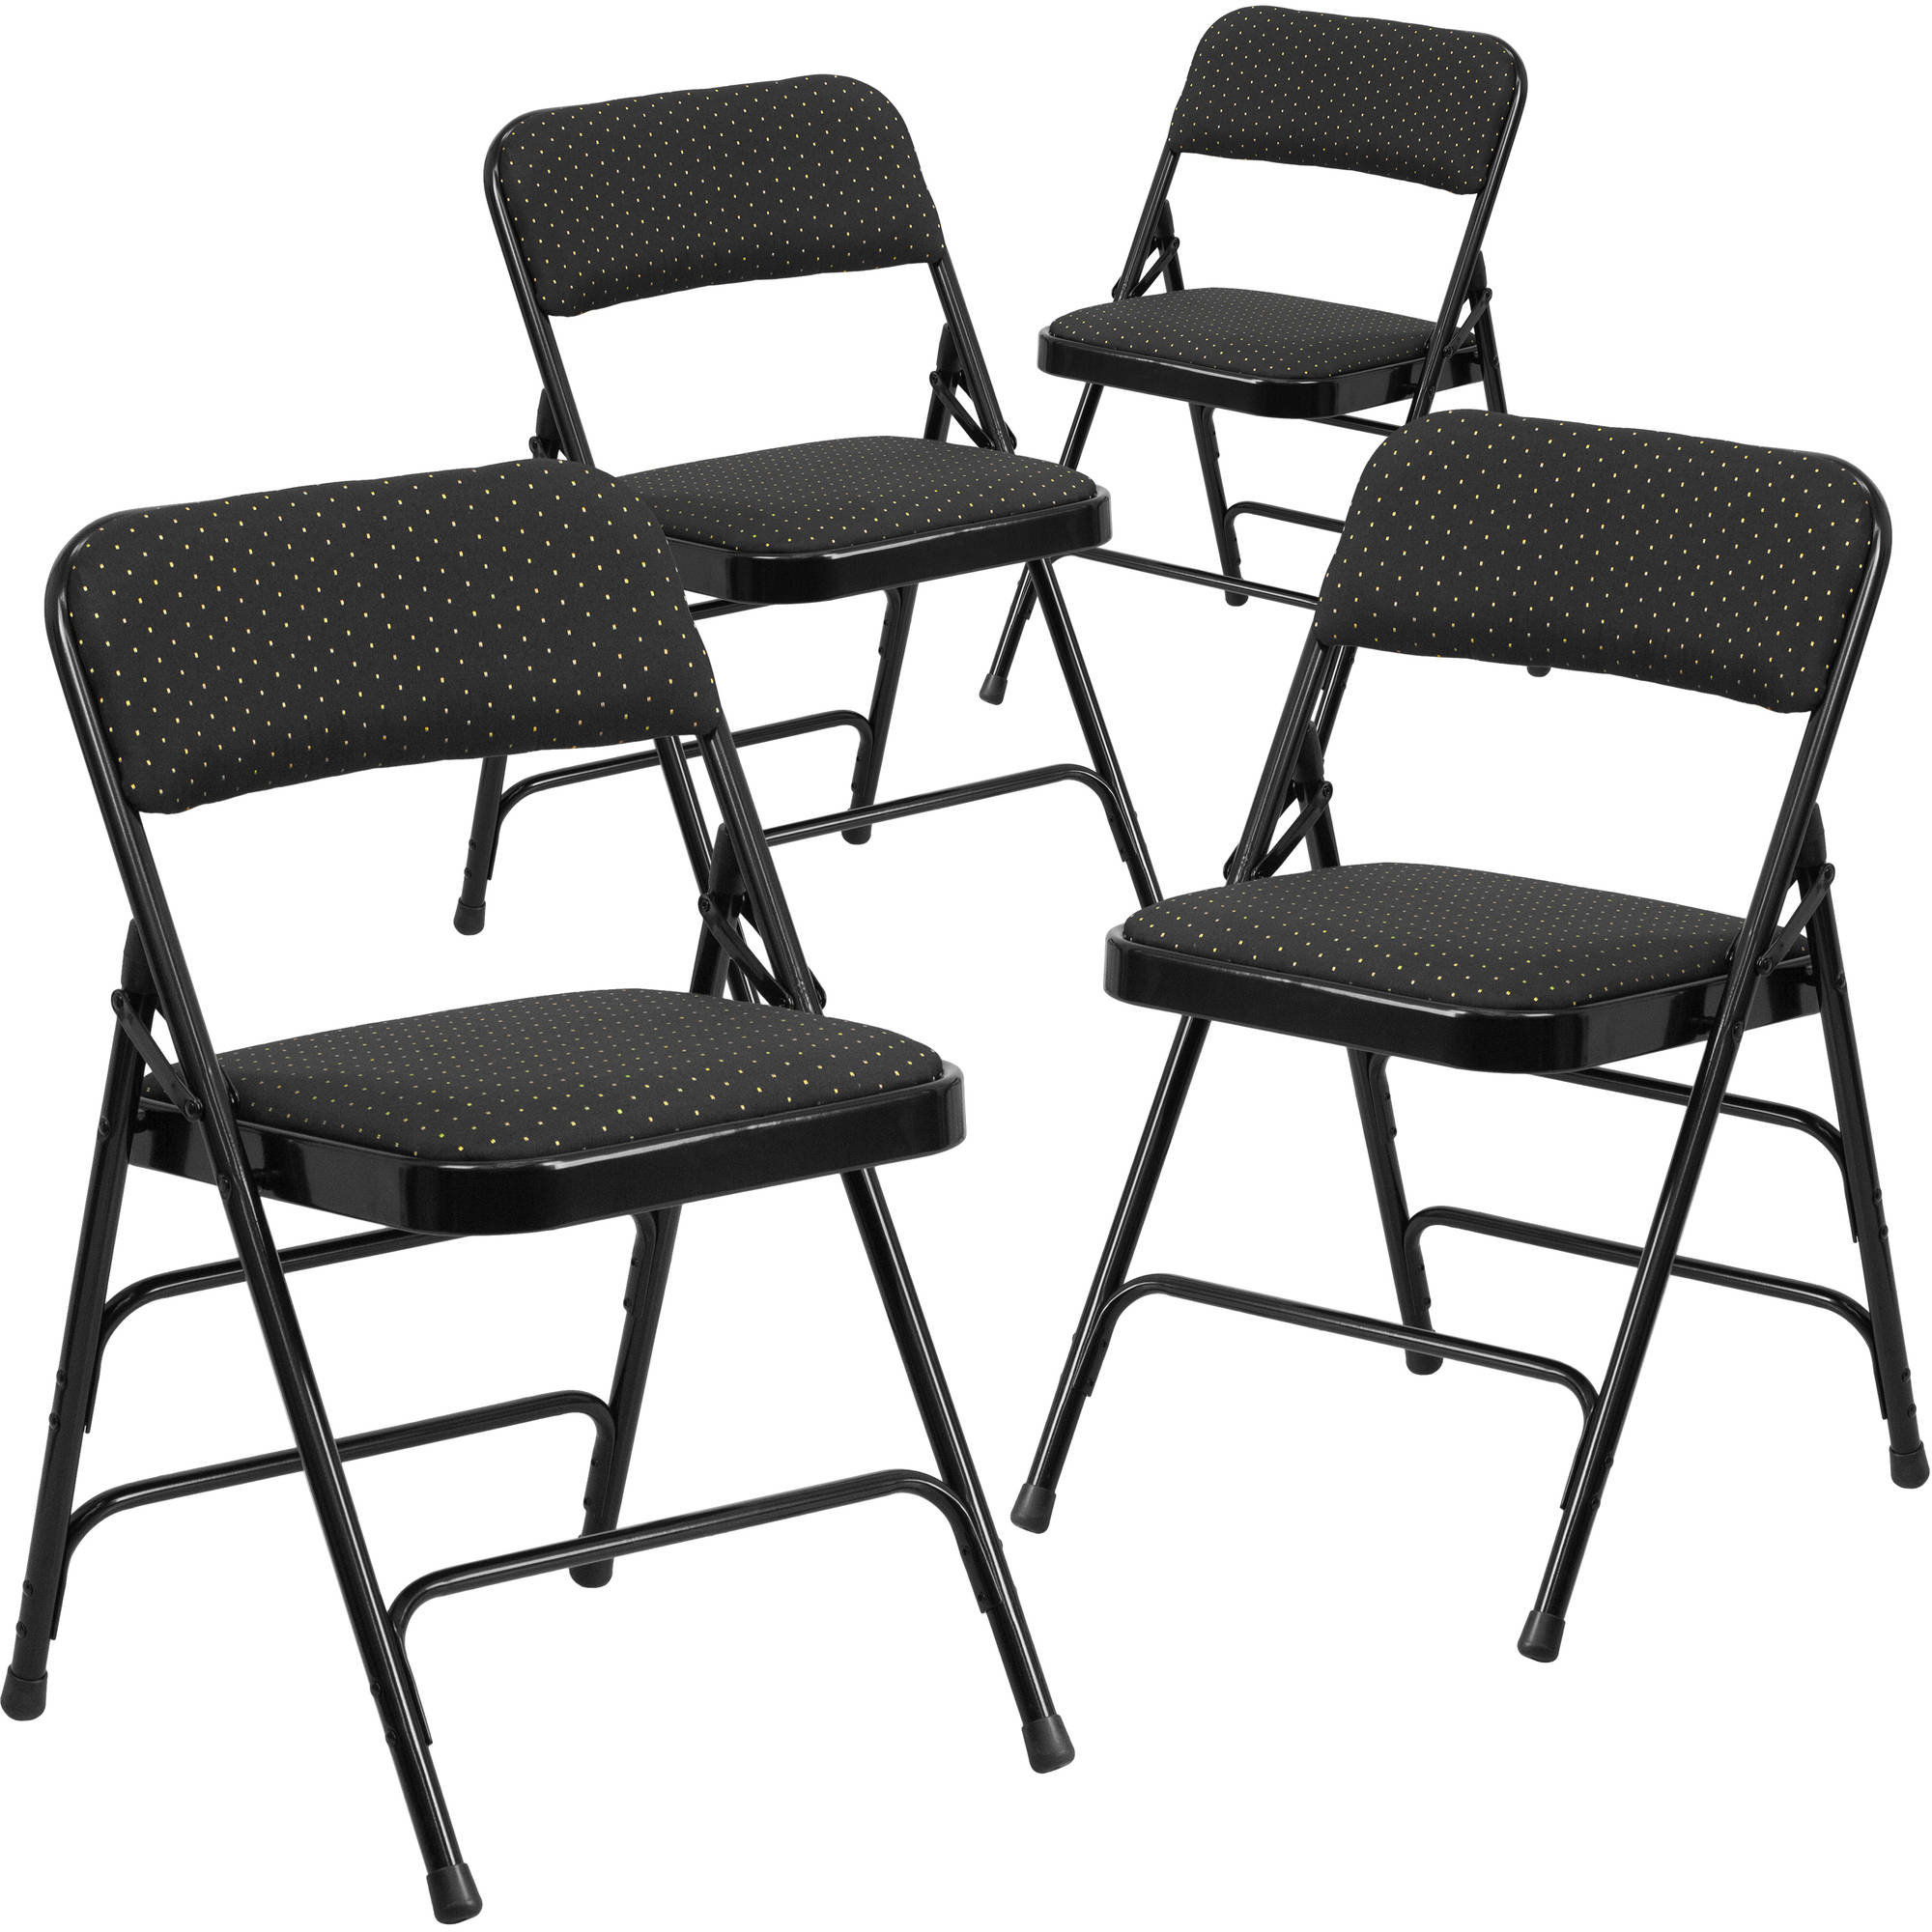 Fabric Folding Chairs Flash Furniture 4 Pack Hercules Series Curved Triple